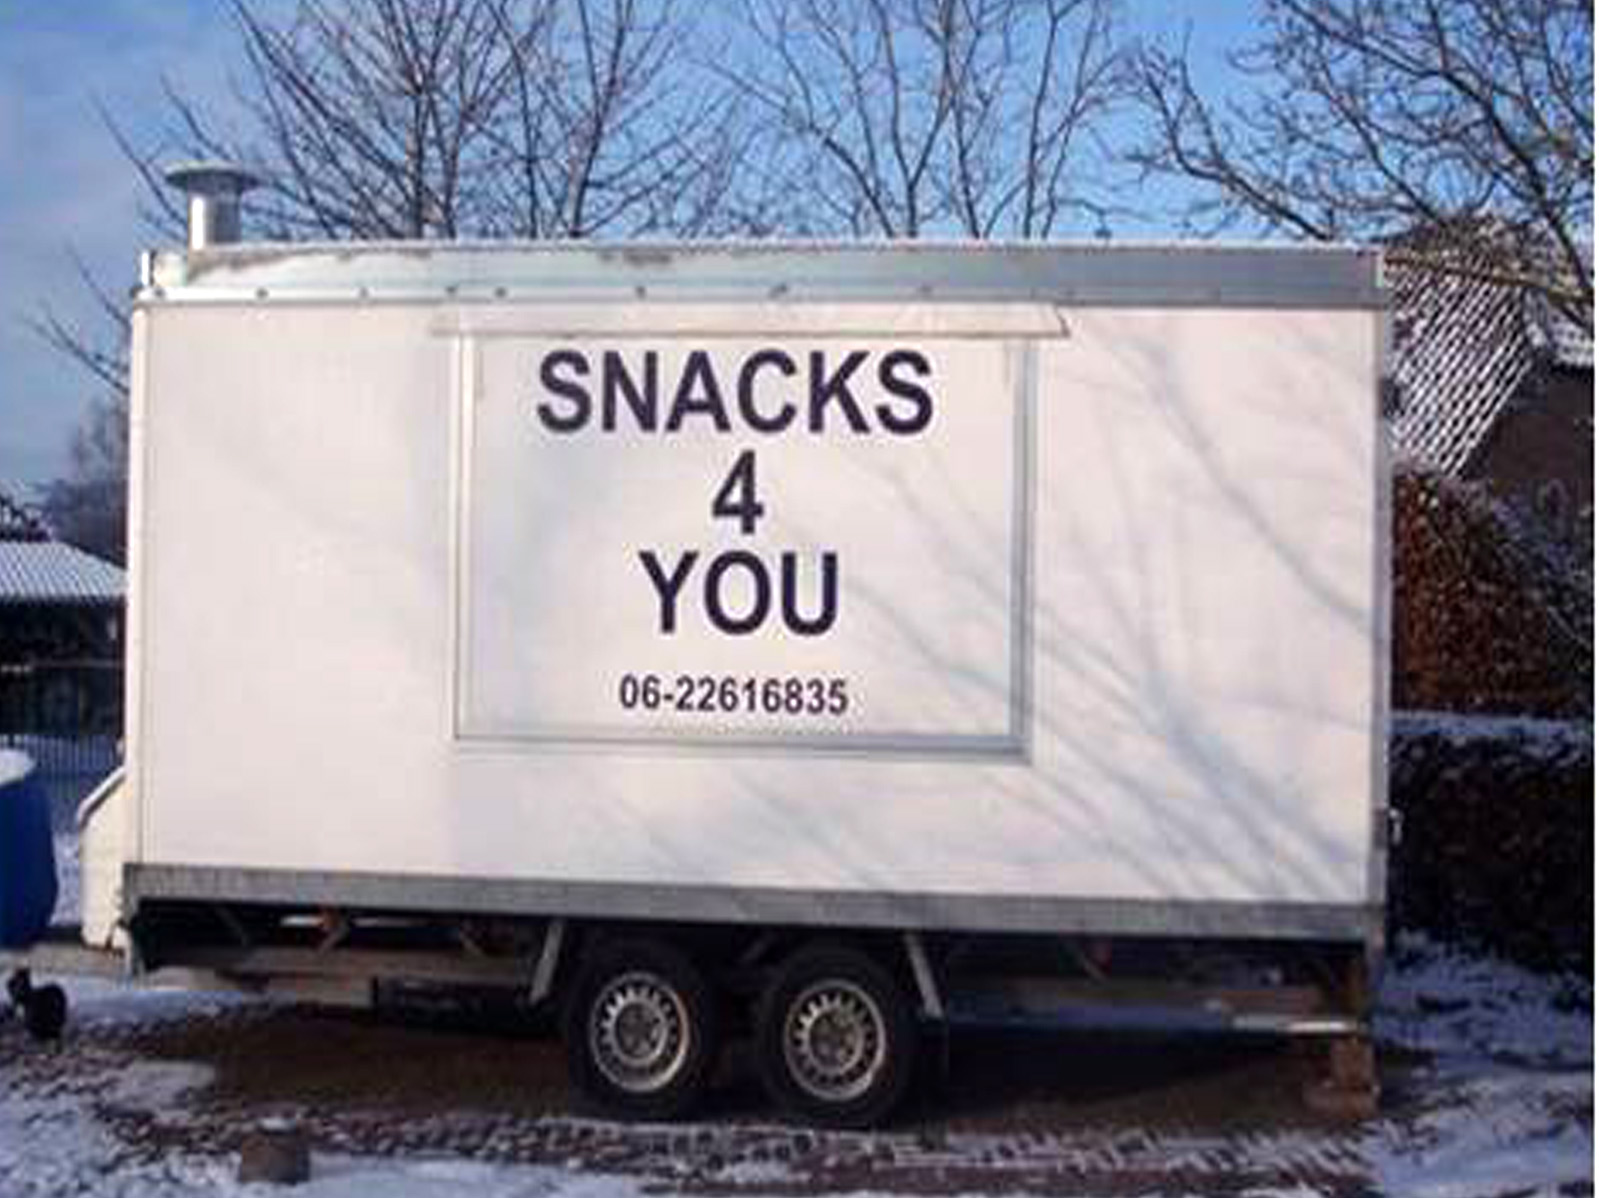 Snacks4you